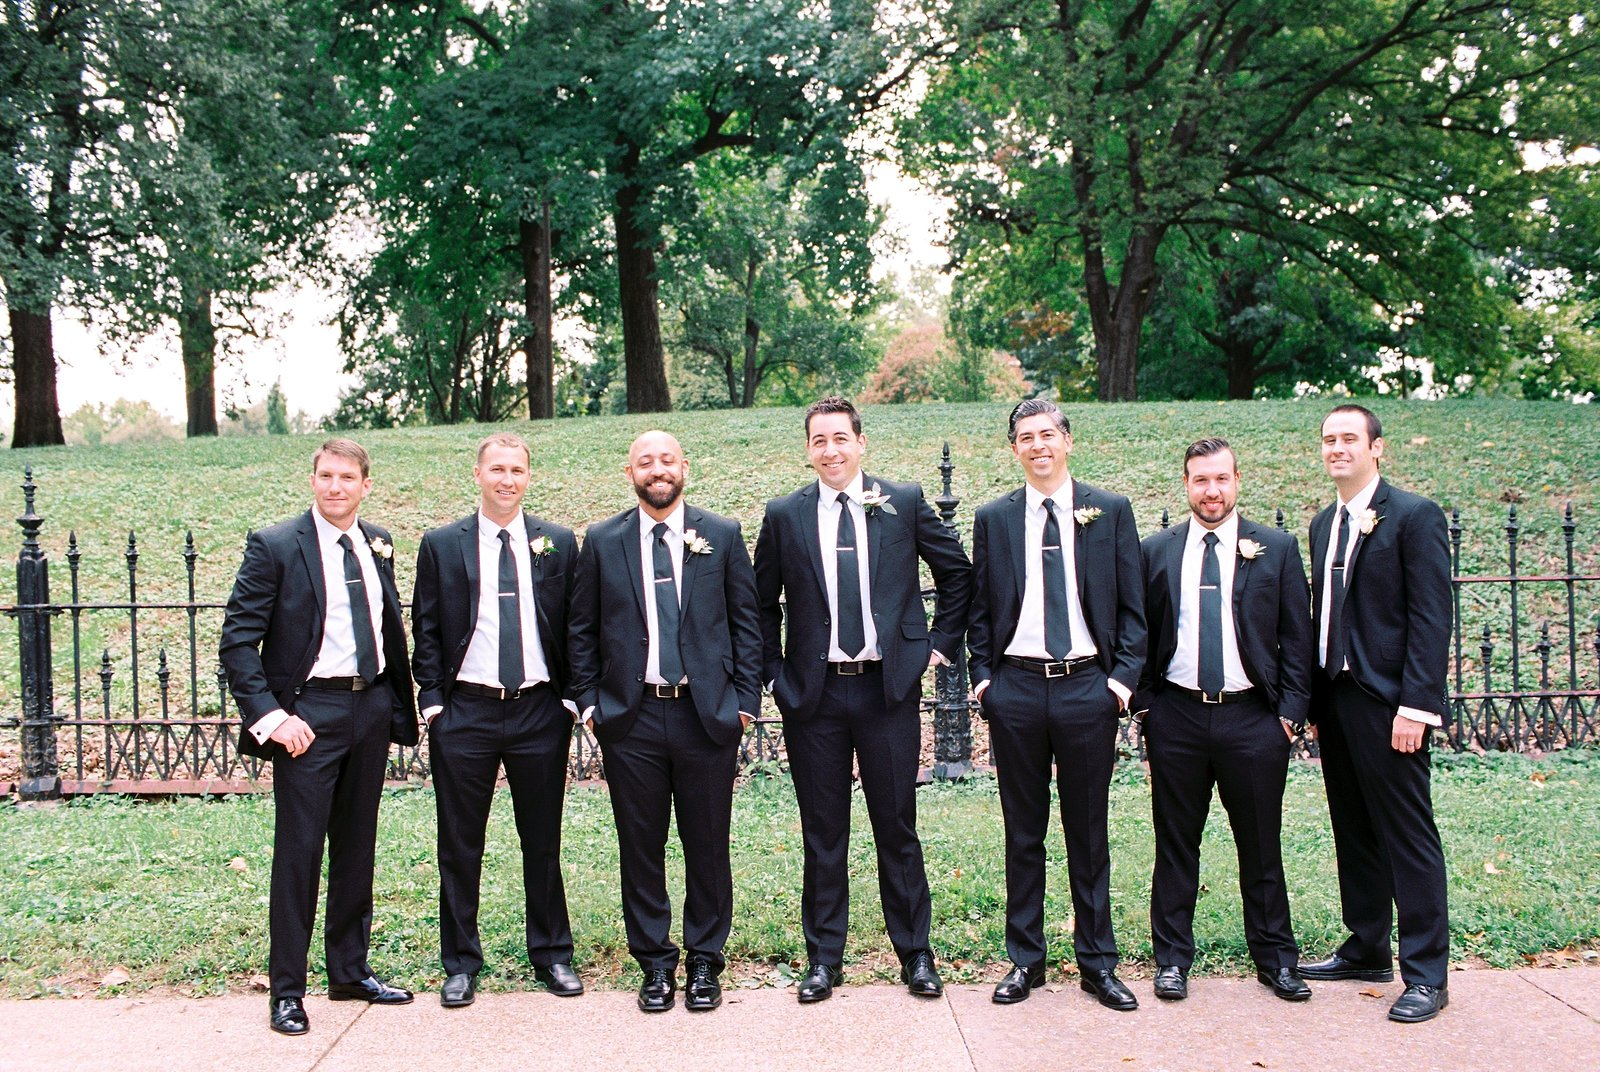 st.louis.wedding.photographer_0321